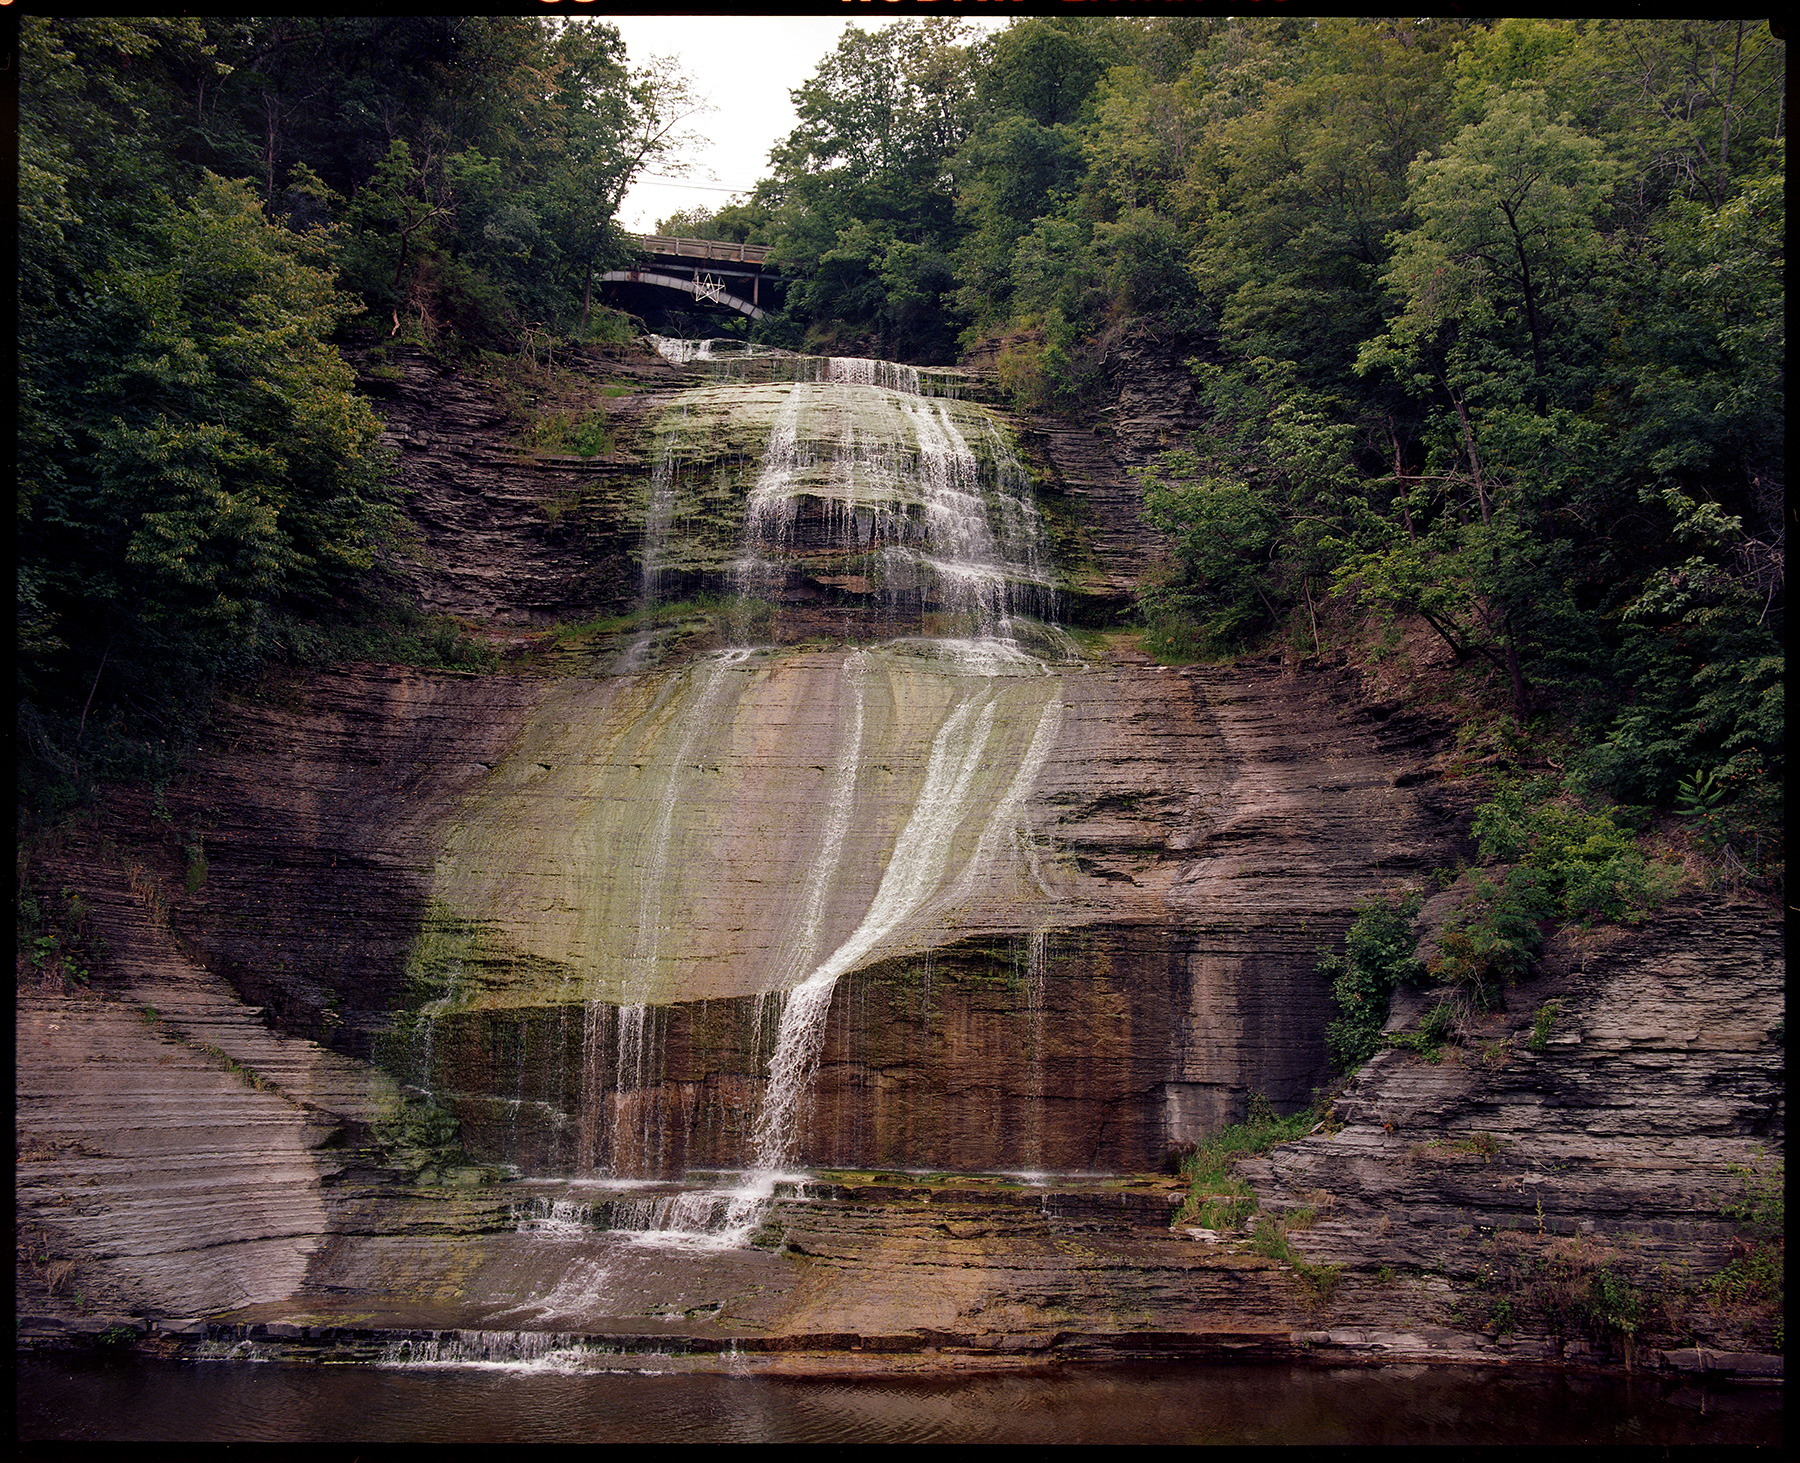 Mamiya RZ67 Medium Format film Photography upstate New York NY